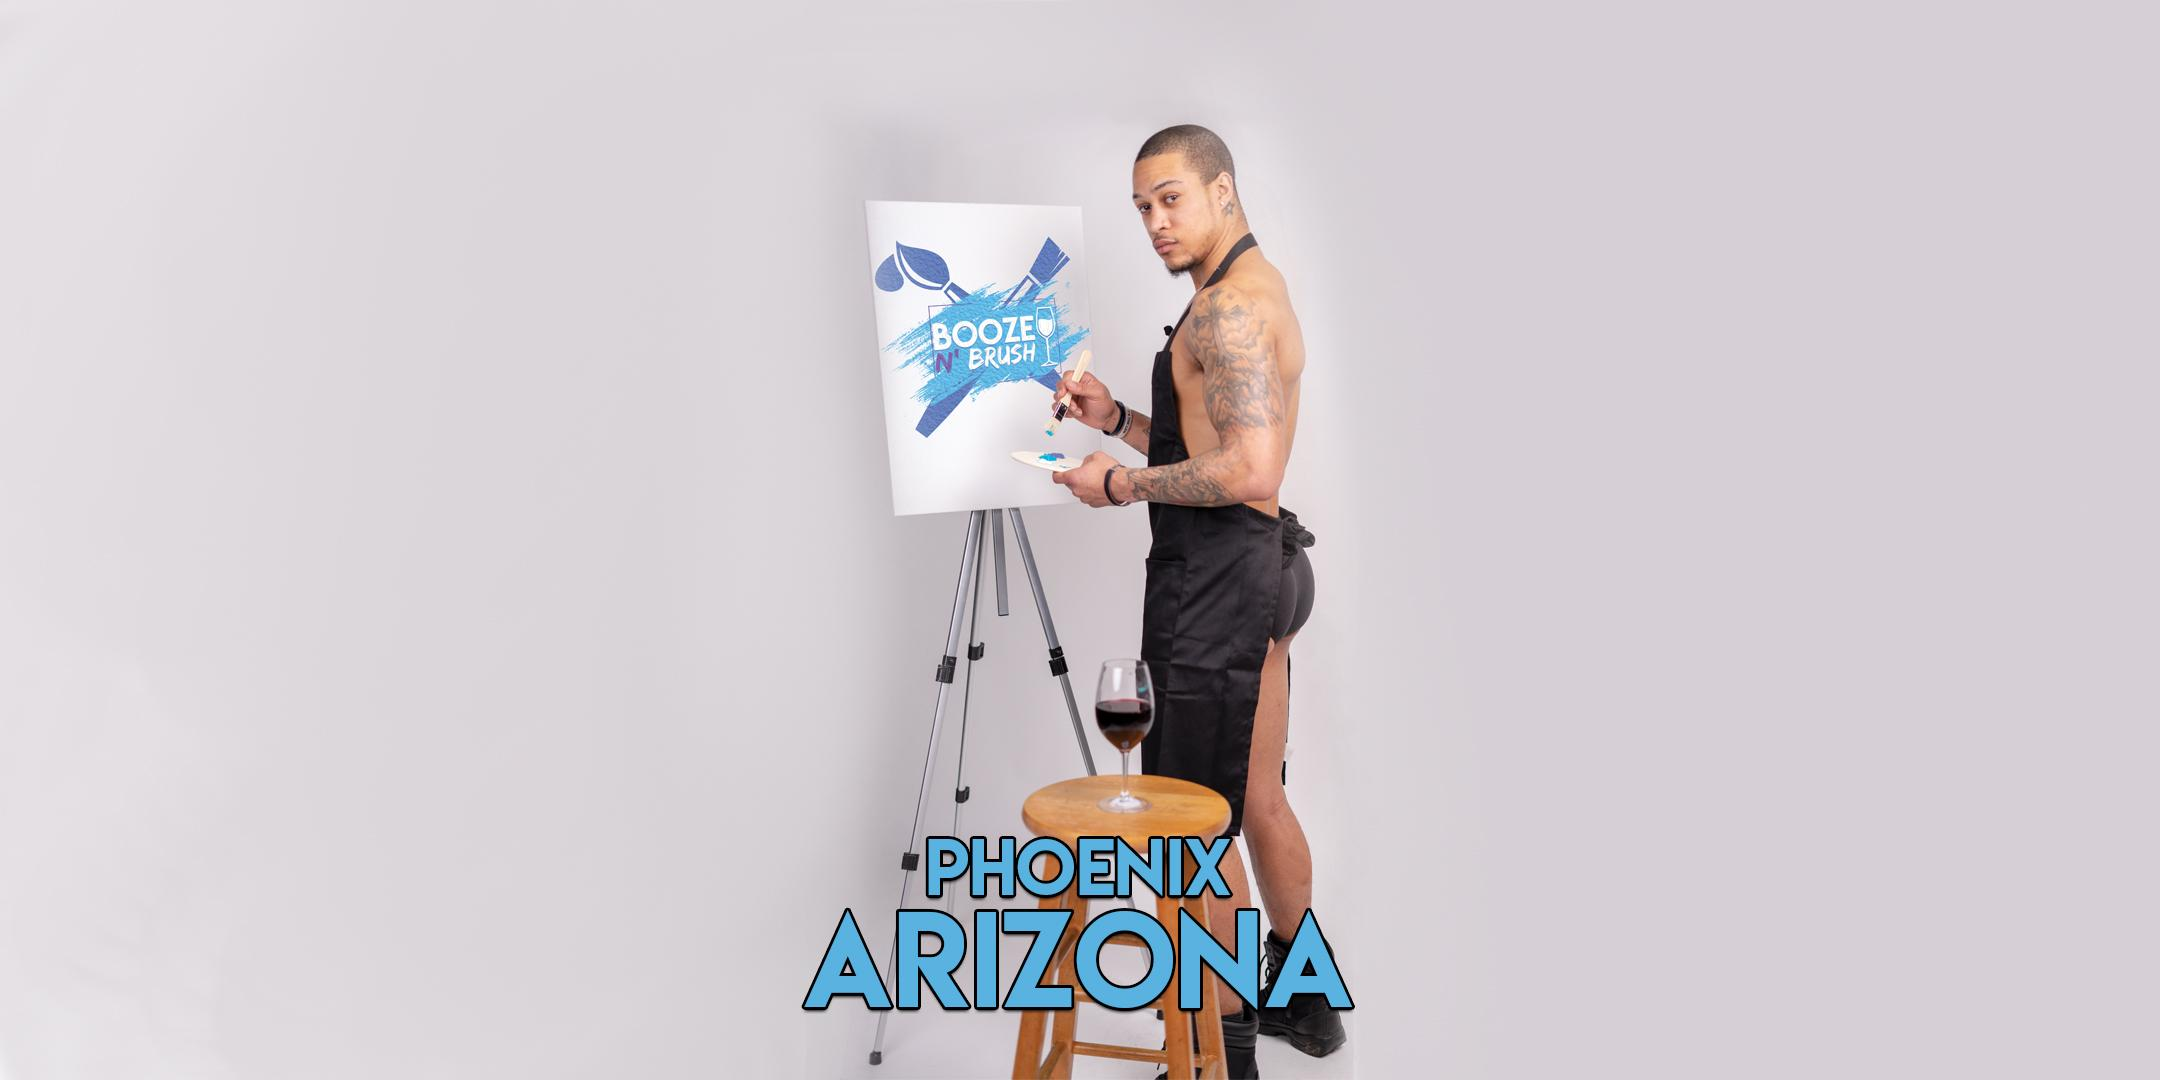 Booze N' Brush Next to Naked Sip n' Paint Phoenix, AZ - Exotic Male Model Painting Event